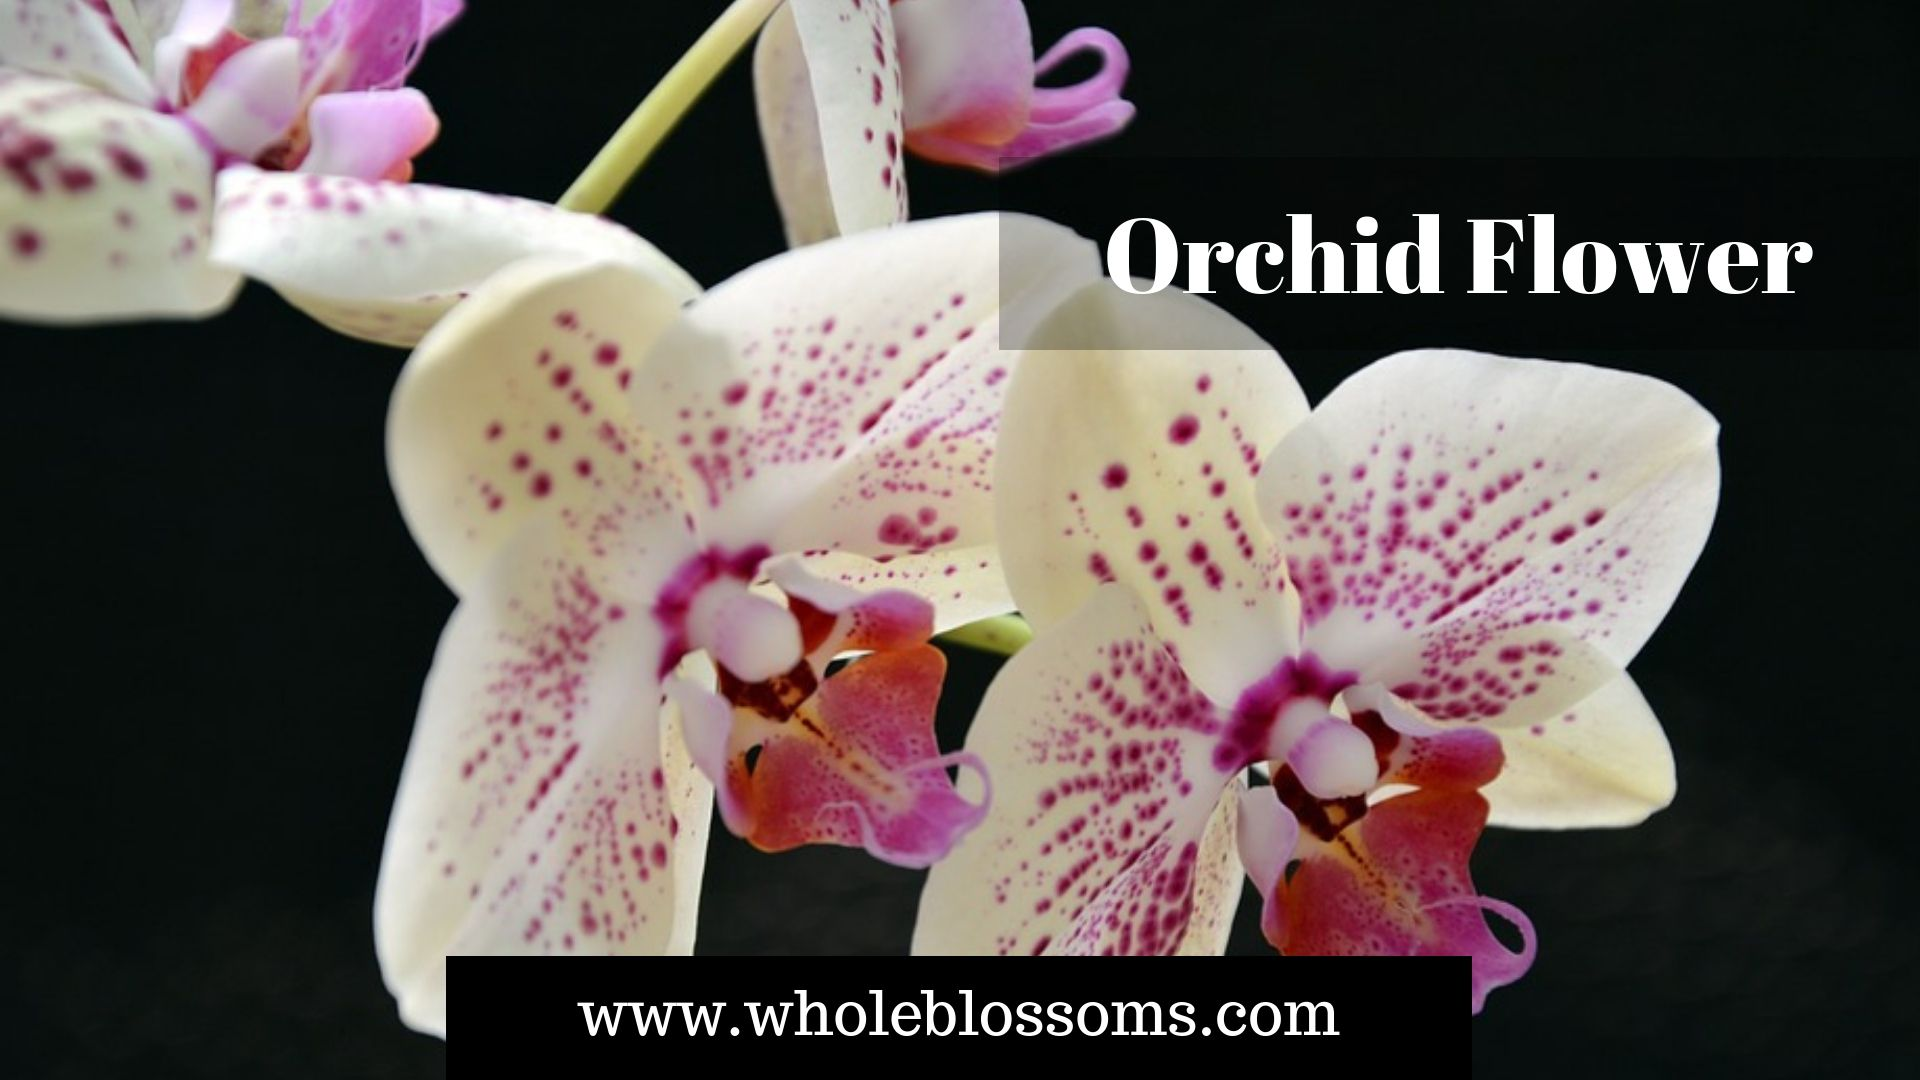 Orchid Flowers Come In Many Different Varieties And Colors Such As Pink Orchid Purple Orchid White Orchid And M Orchid Flower Orchids Online Flowers For Sale